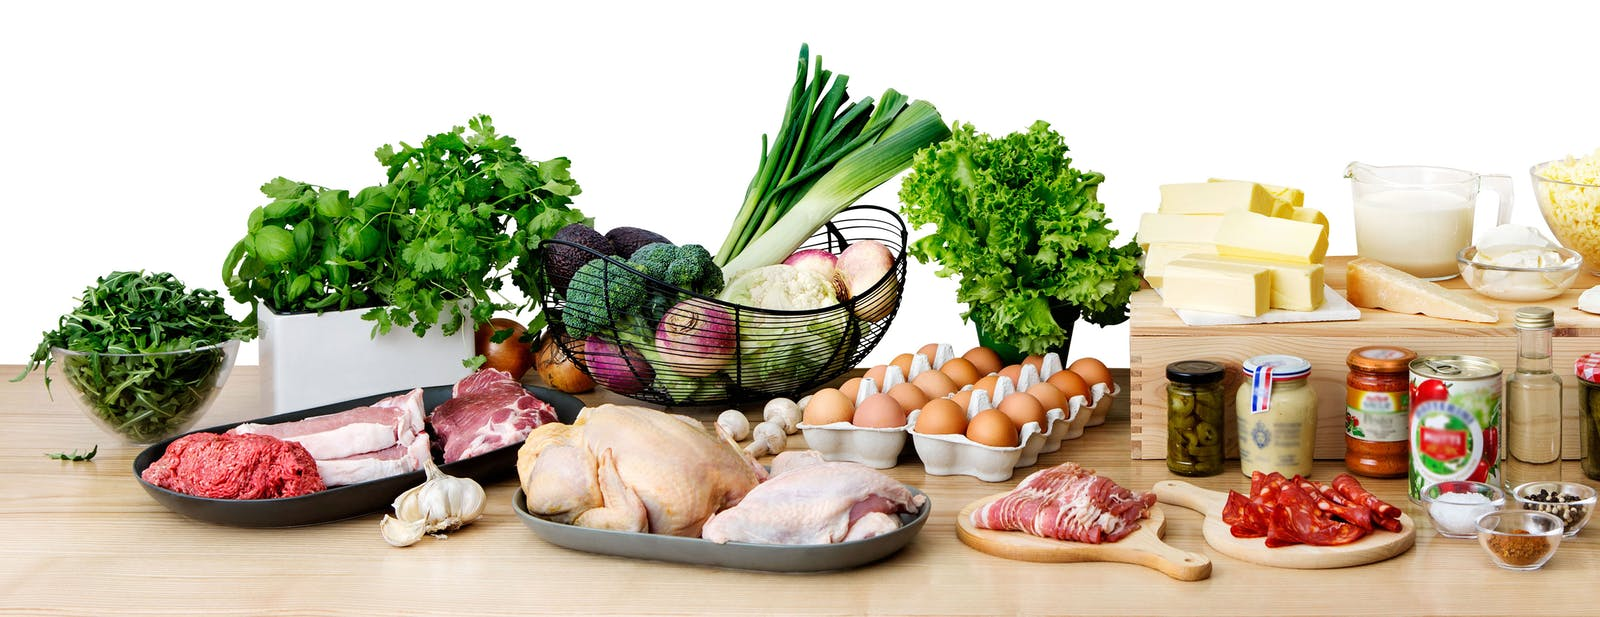 What to Eat and Avoid on a Ketogenic Diet – Diet Doctor